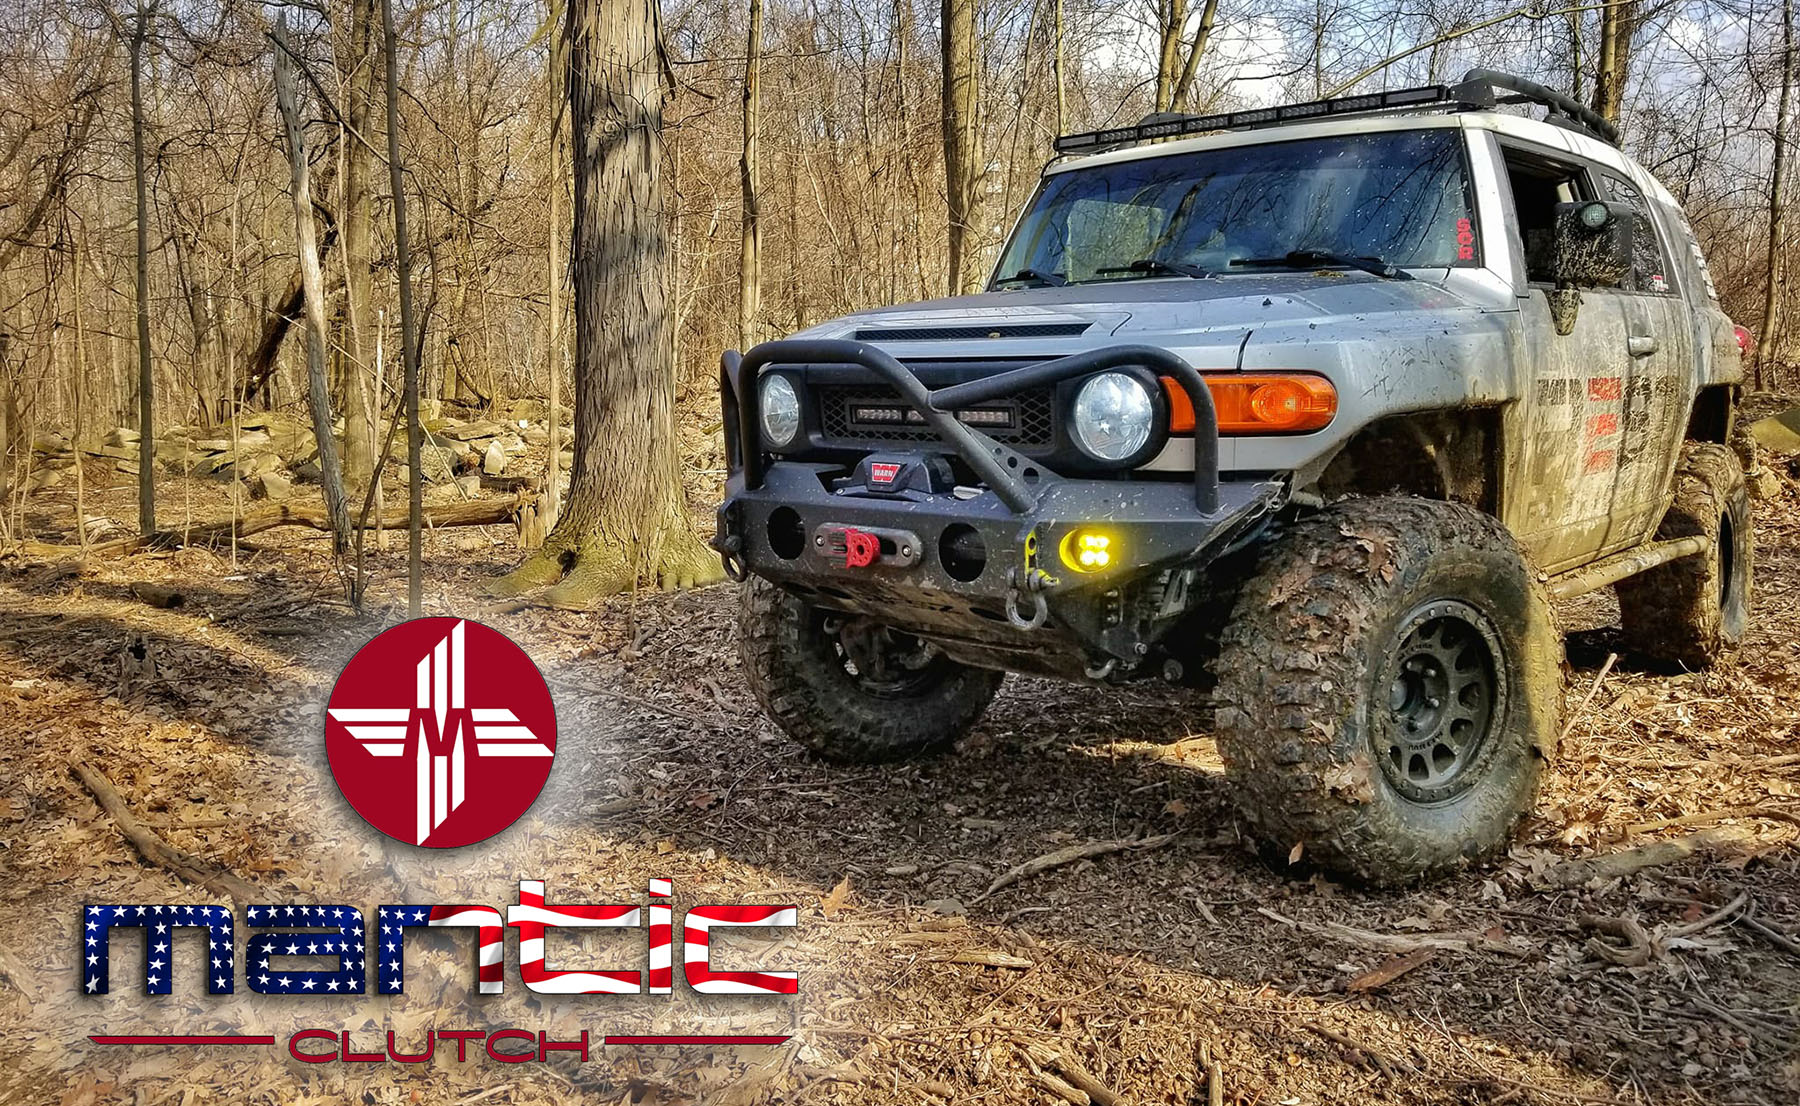 Mantic Clutch USA Truck Jeep